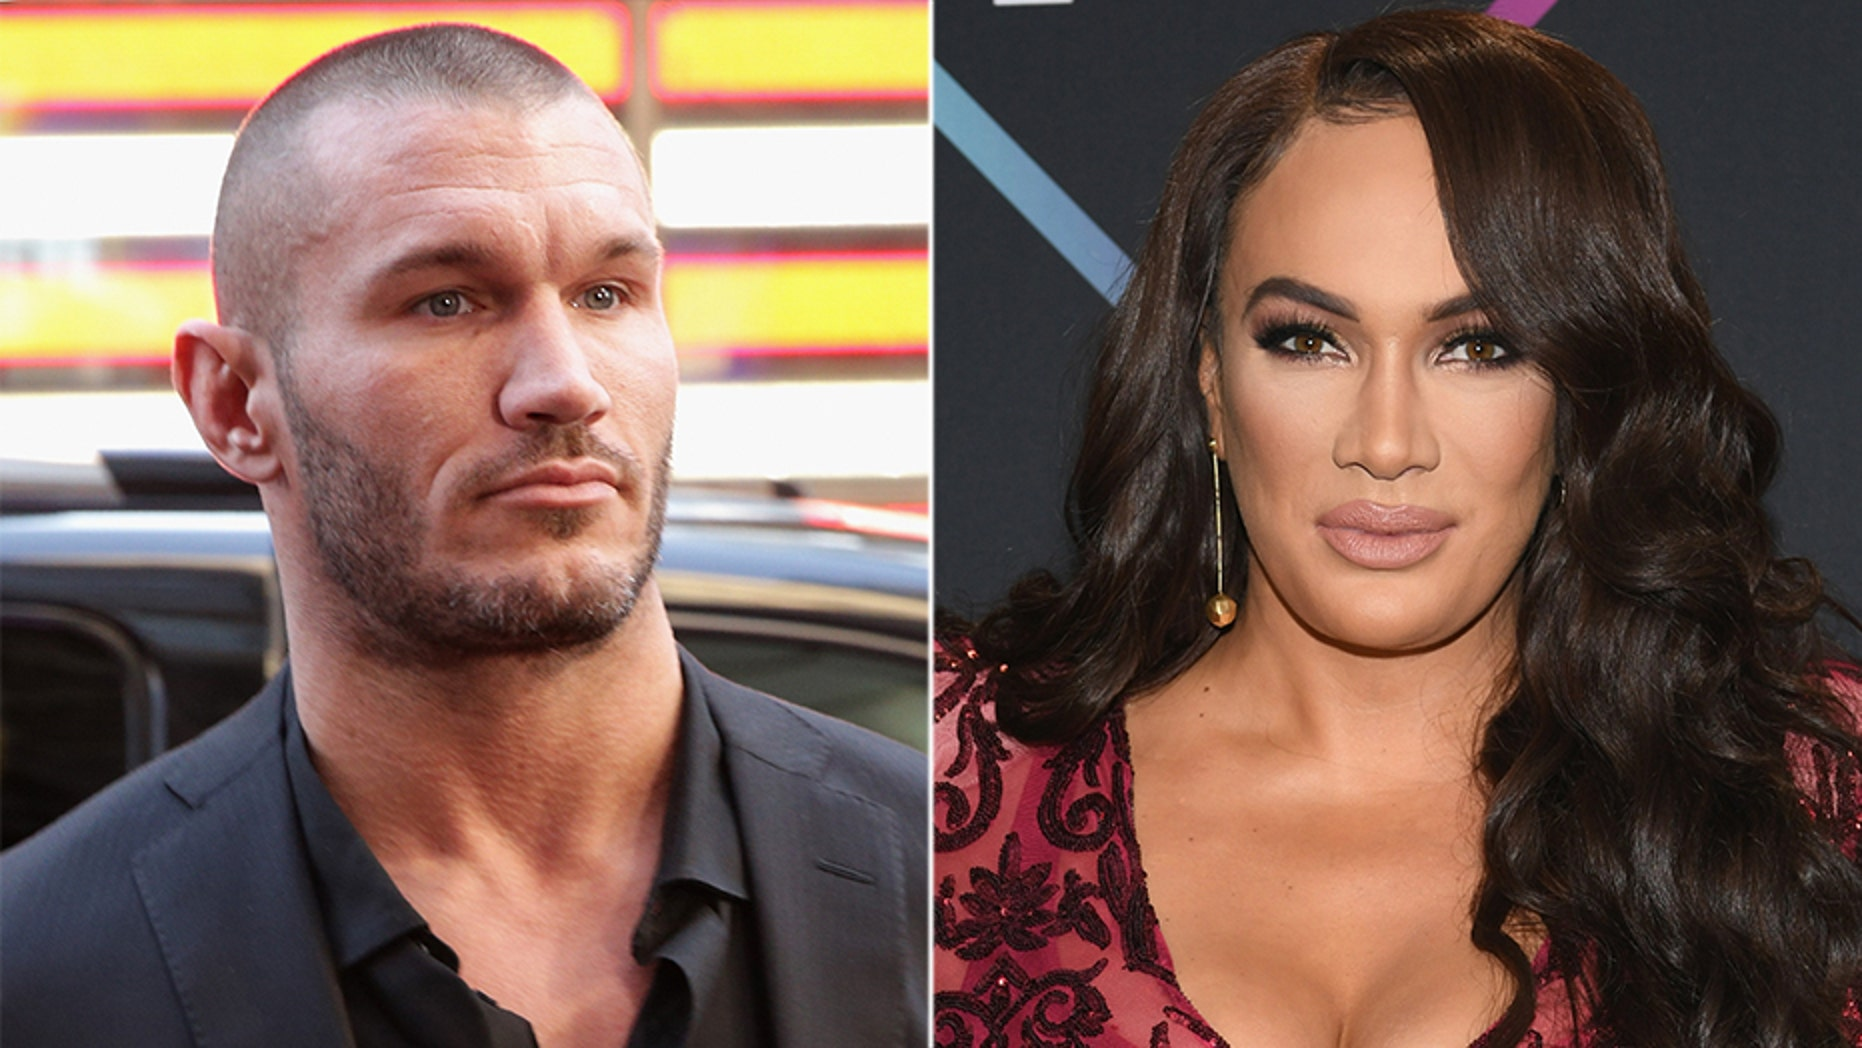 e63b05c5ef5a1 WWE stars Randy Orton, Nia Jax shock fans at Royal Rumble | Fox News